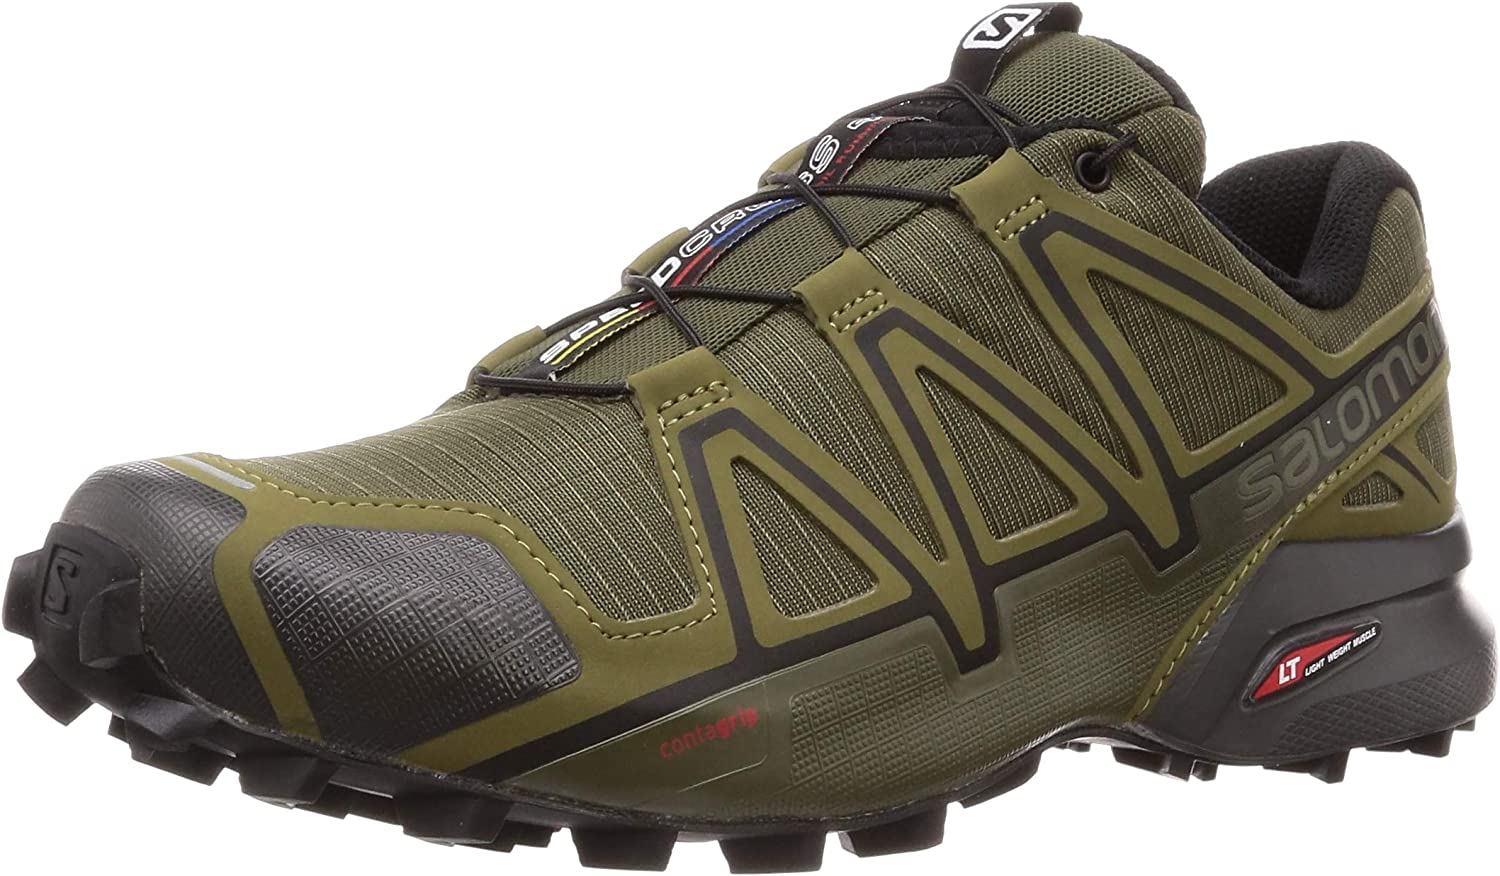 Salomon Speedcross 4 Trail running shoes